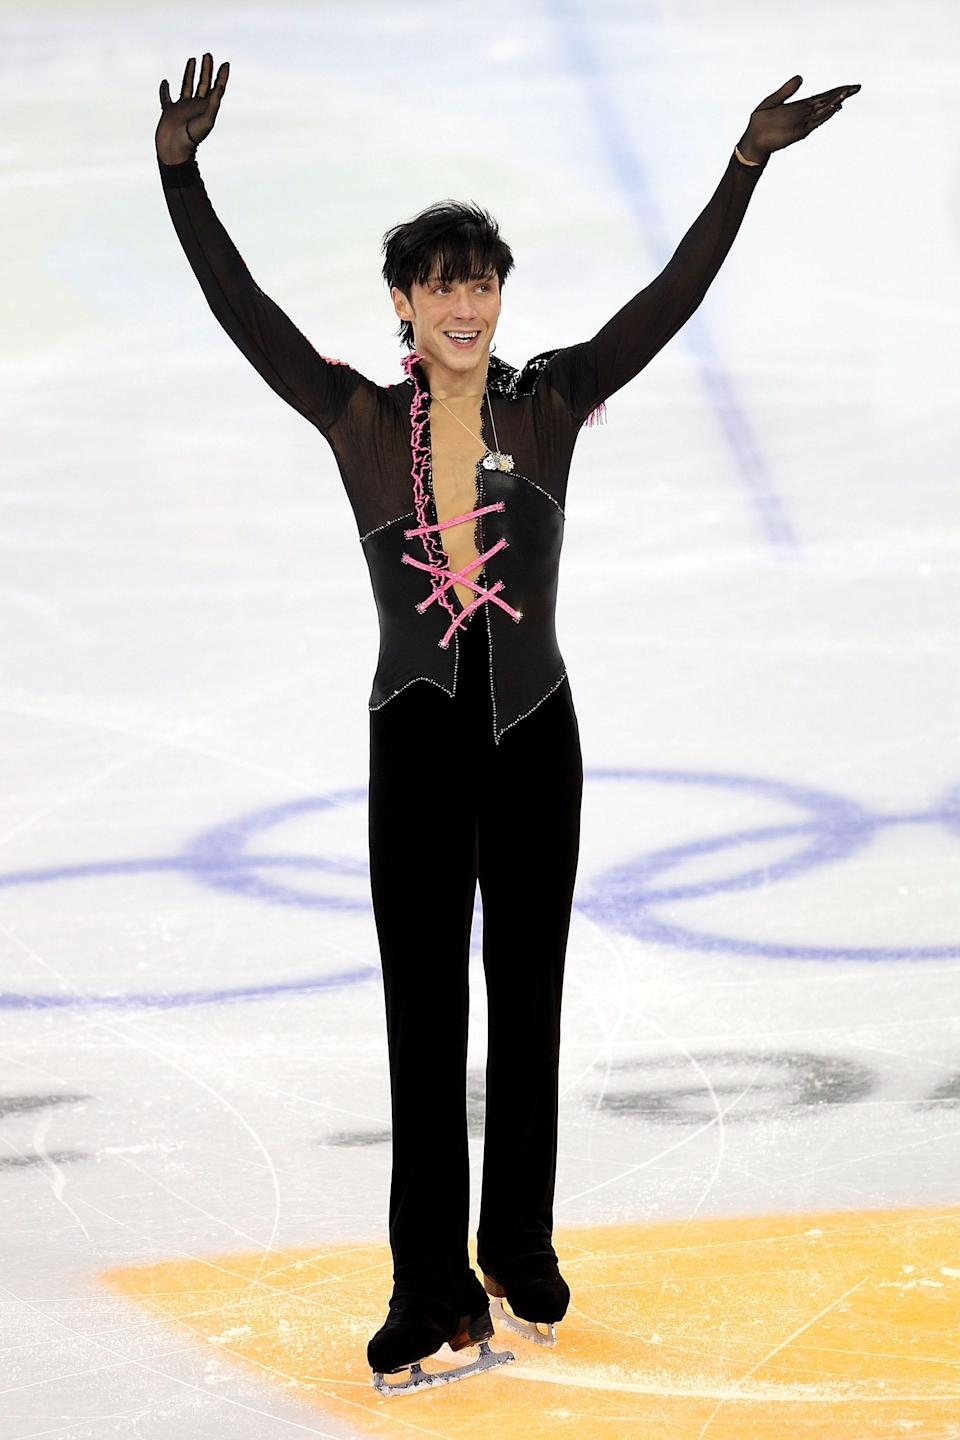 Johnny Weir wearing a corseted top at the olympics in 2010.